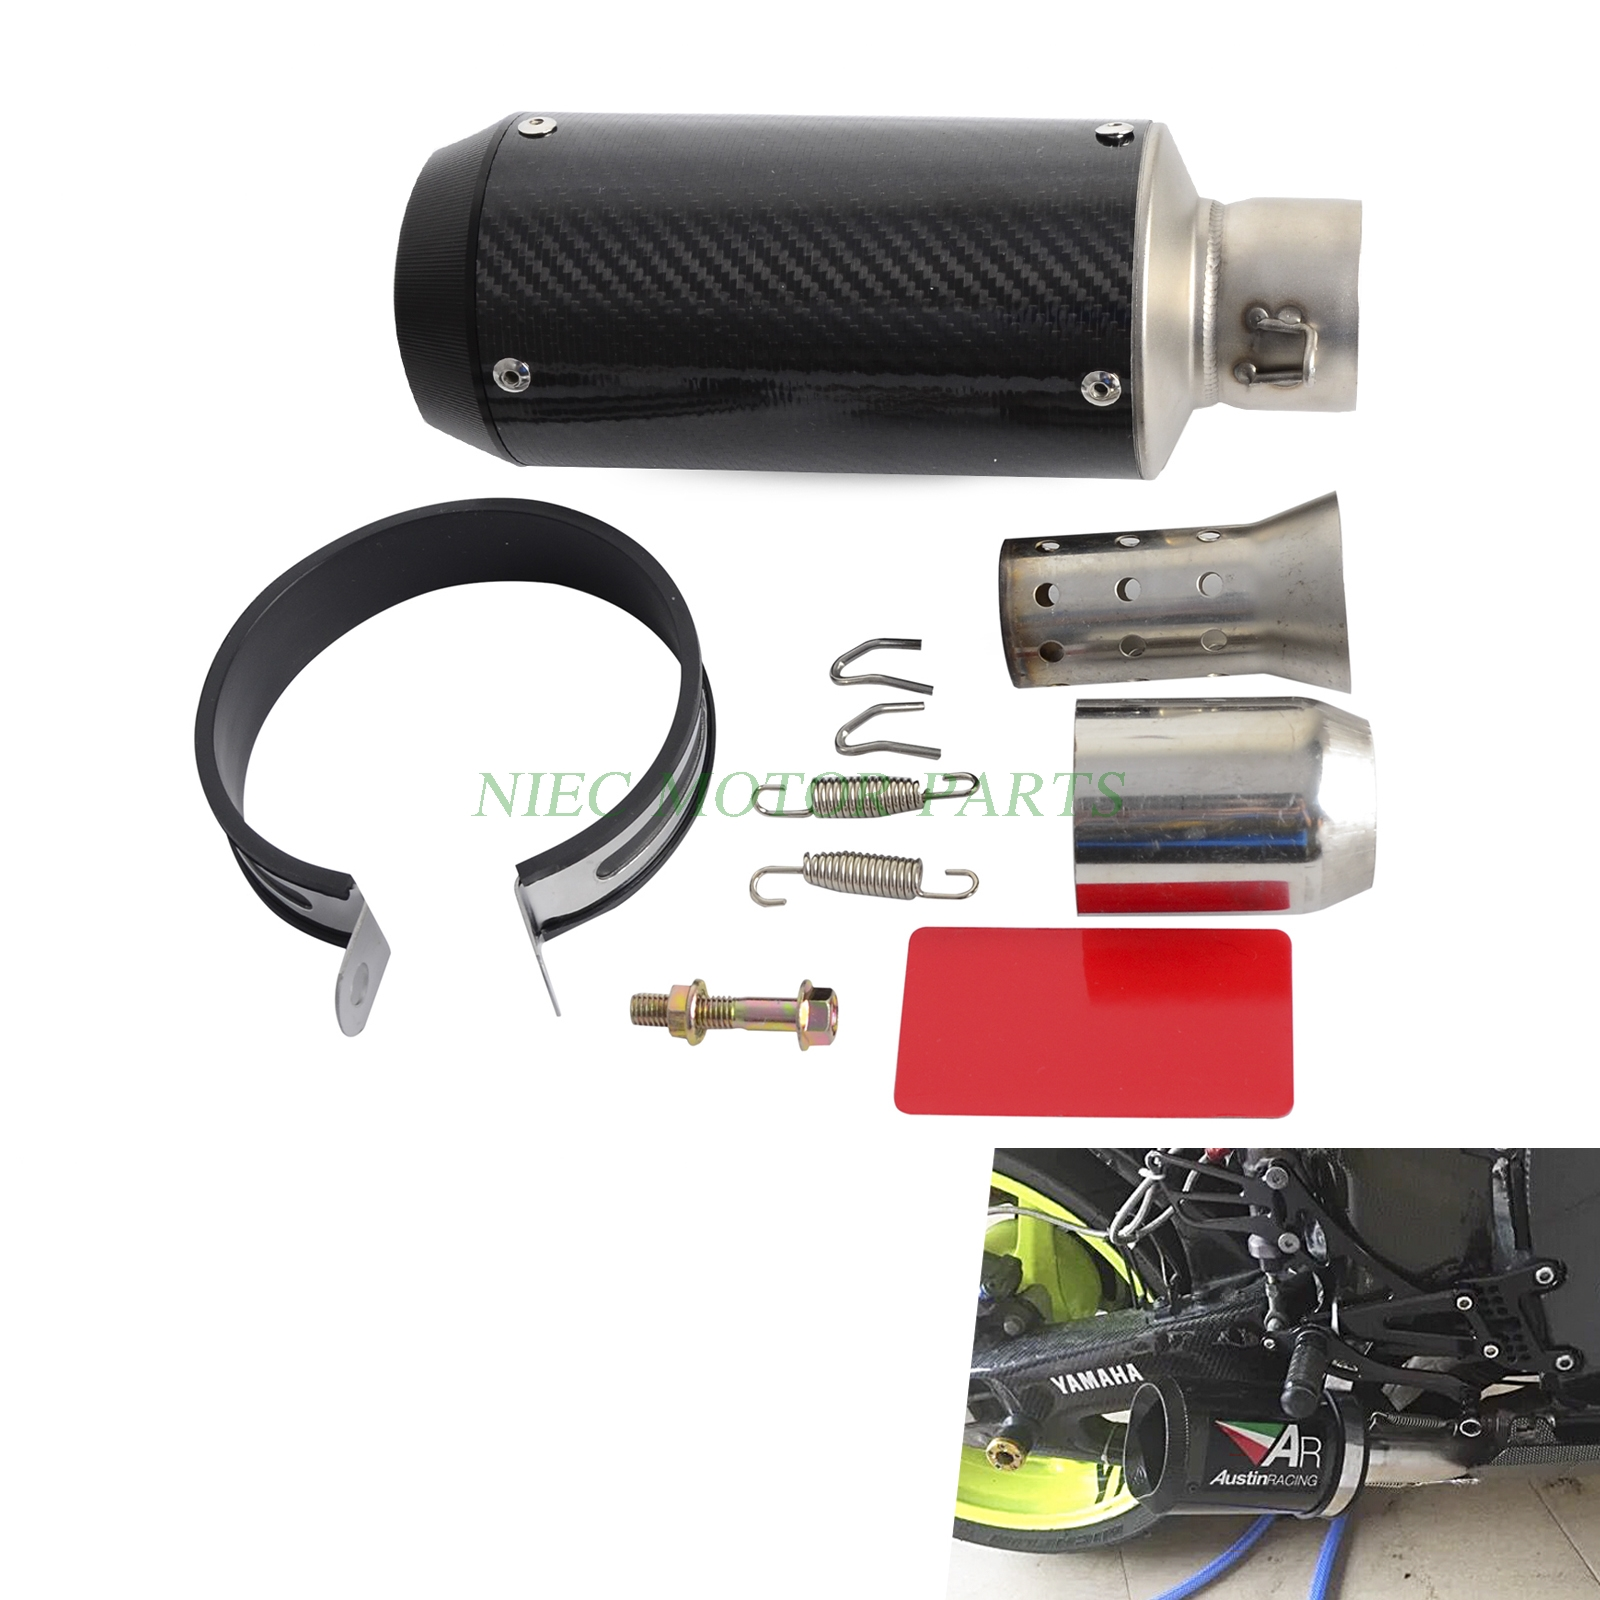 High performance motorcycle carbon fiber slip-on exhaust muffler For Scooter Motorcycle ATV Dirt Bike Quad leonard  yates high performance options